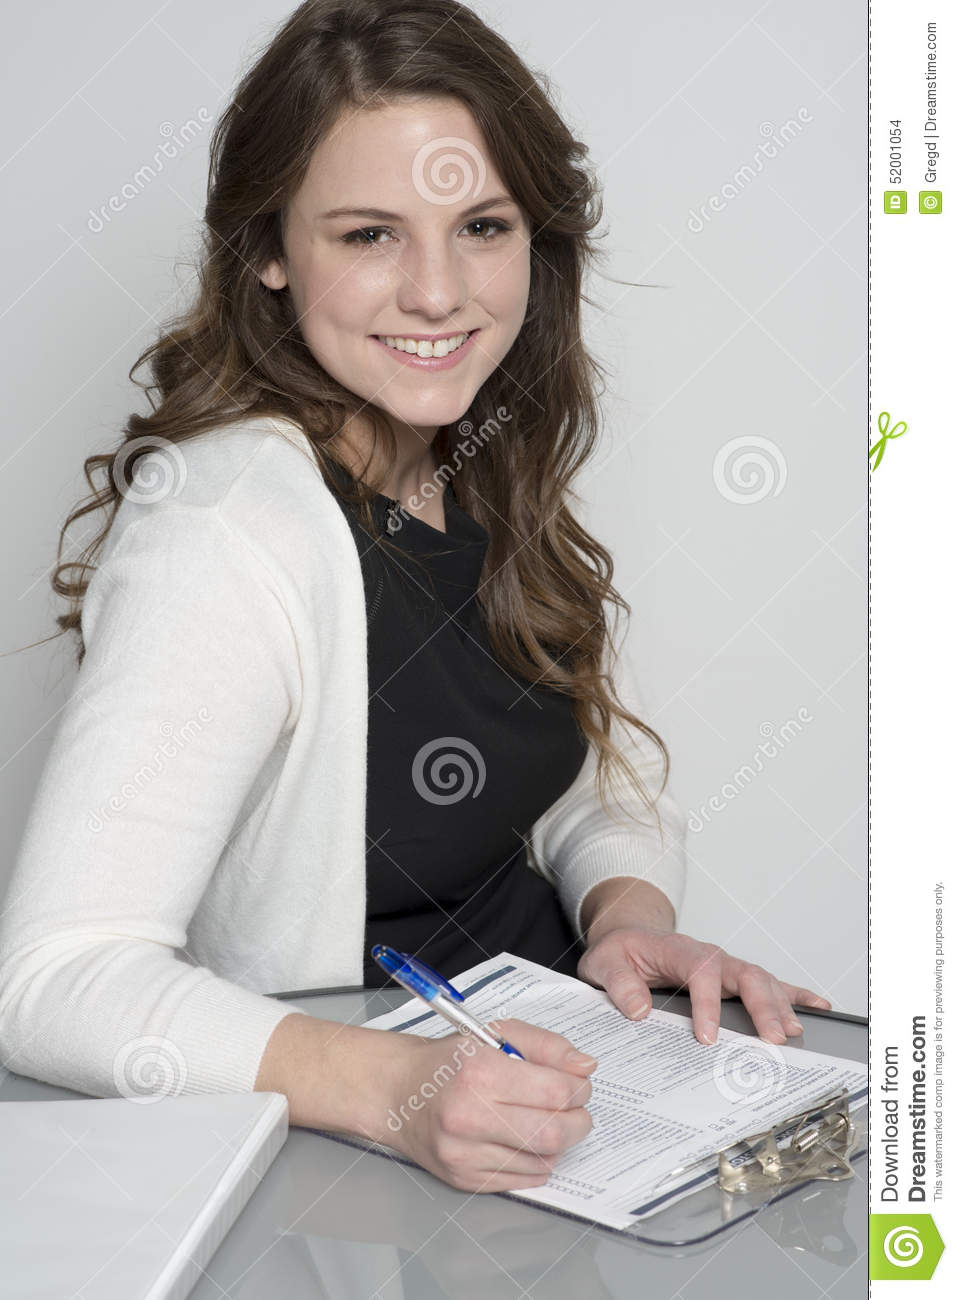 woman filling out form stock photo. image of american - 52001054